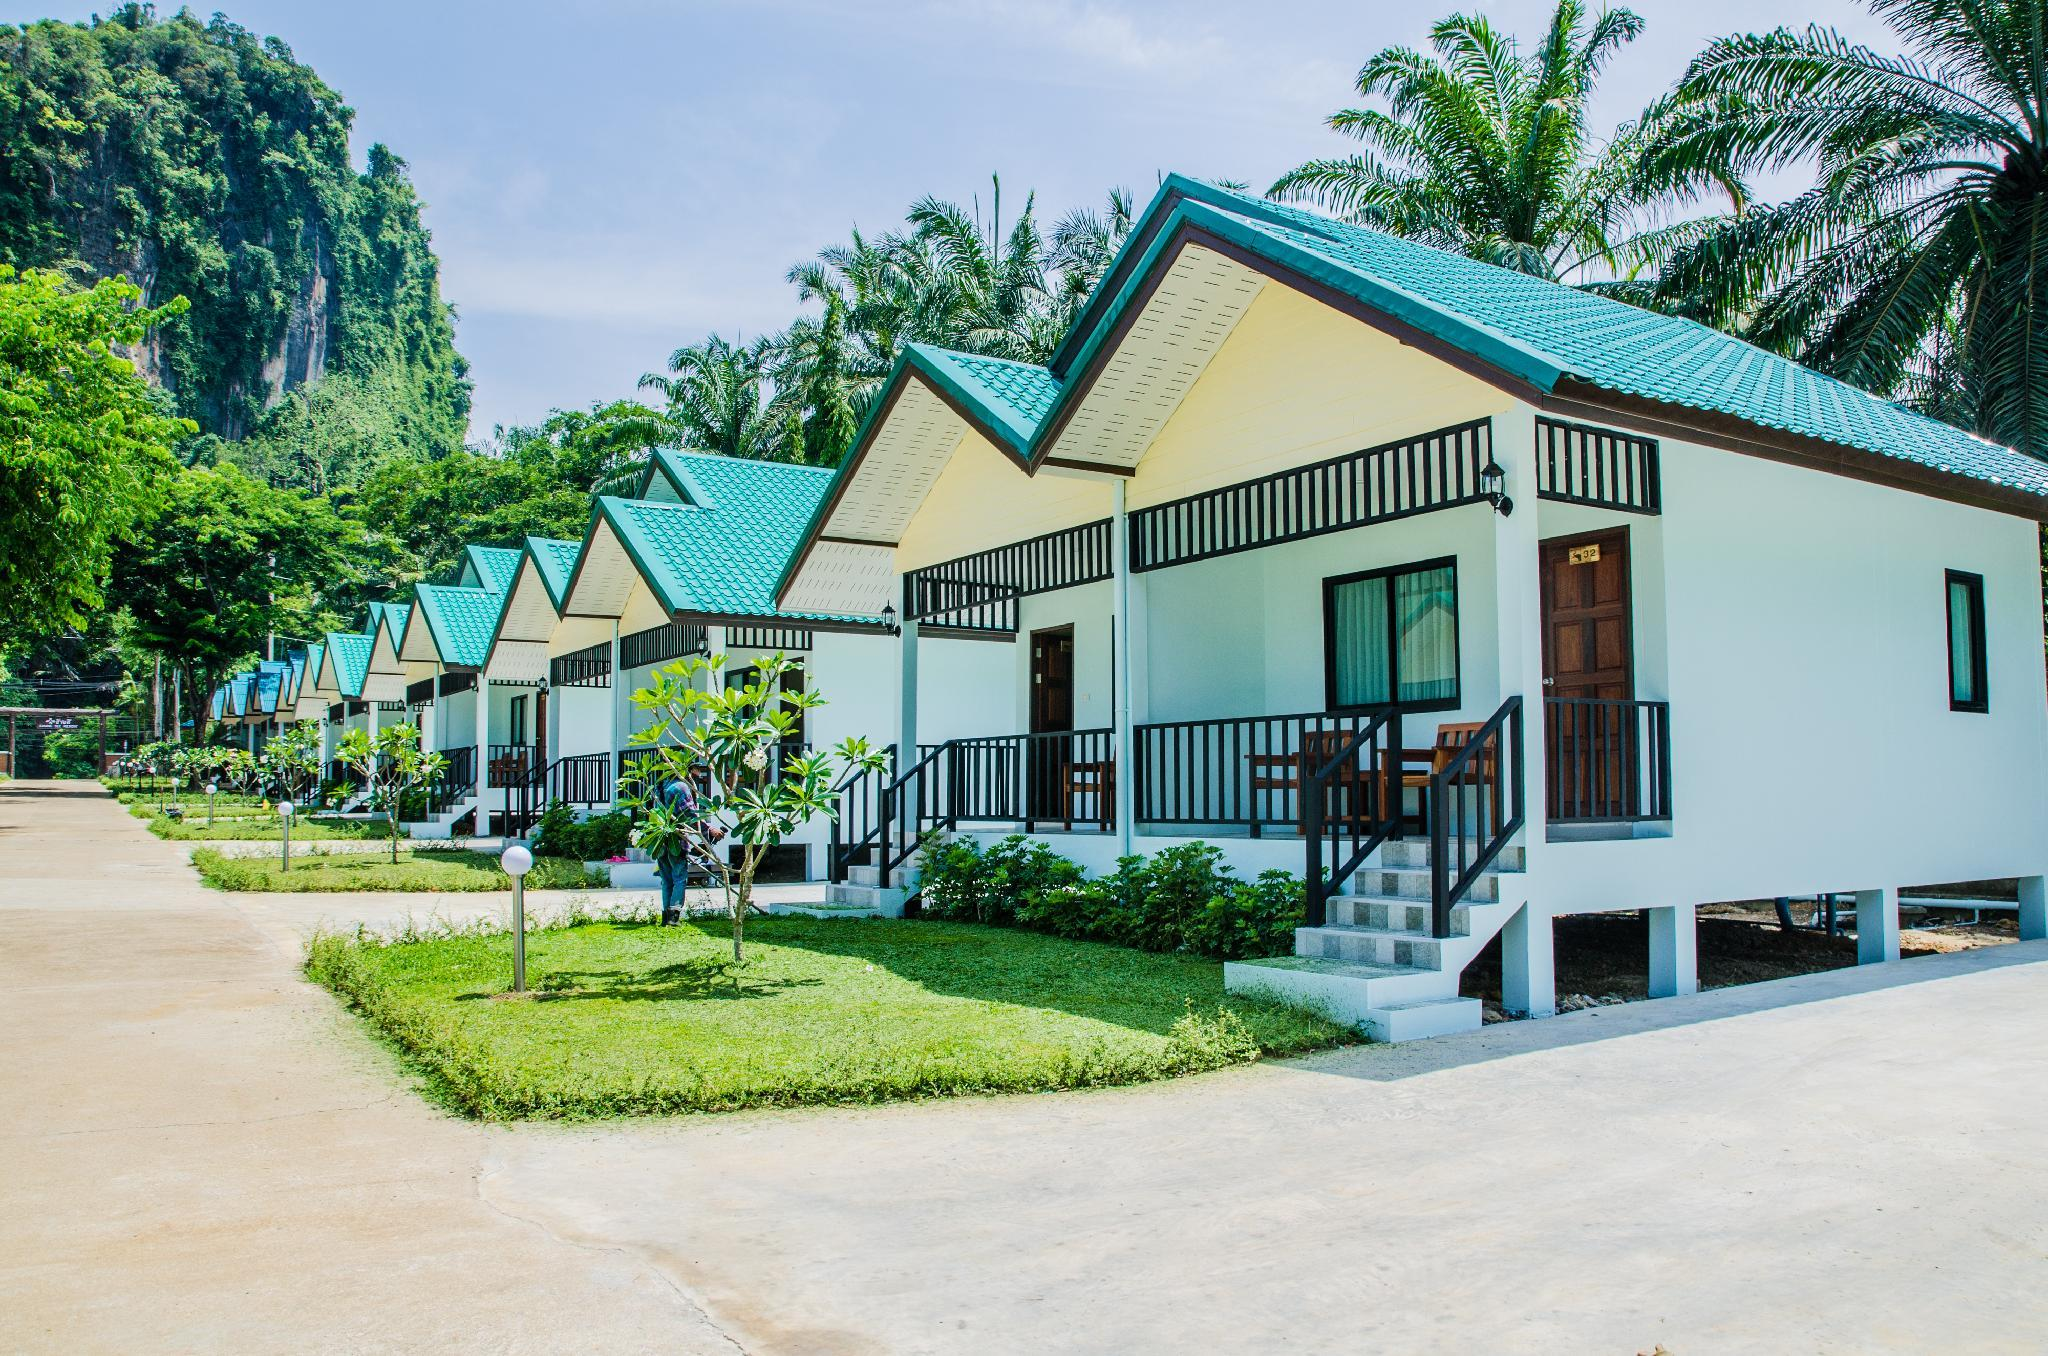 About Changsi Resort